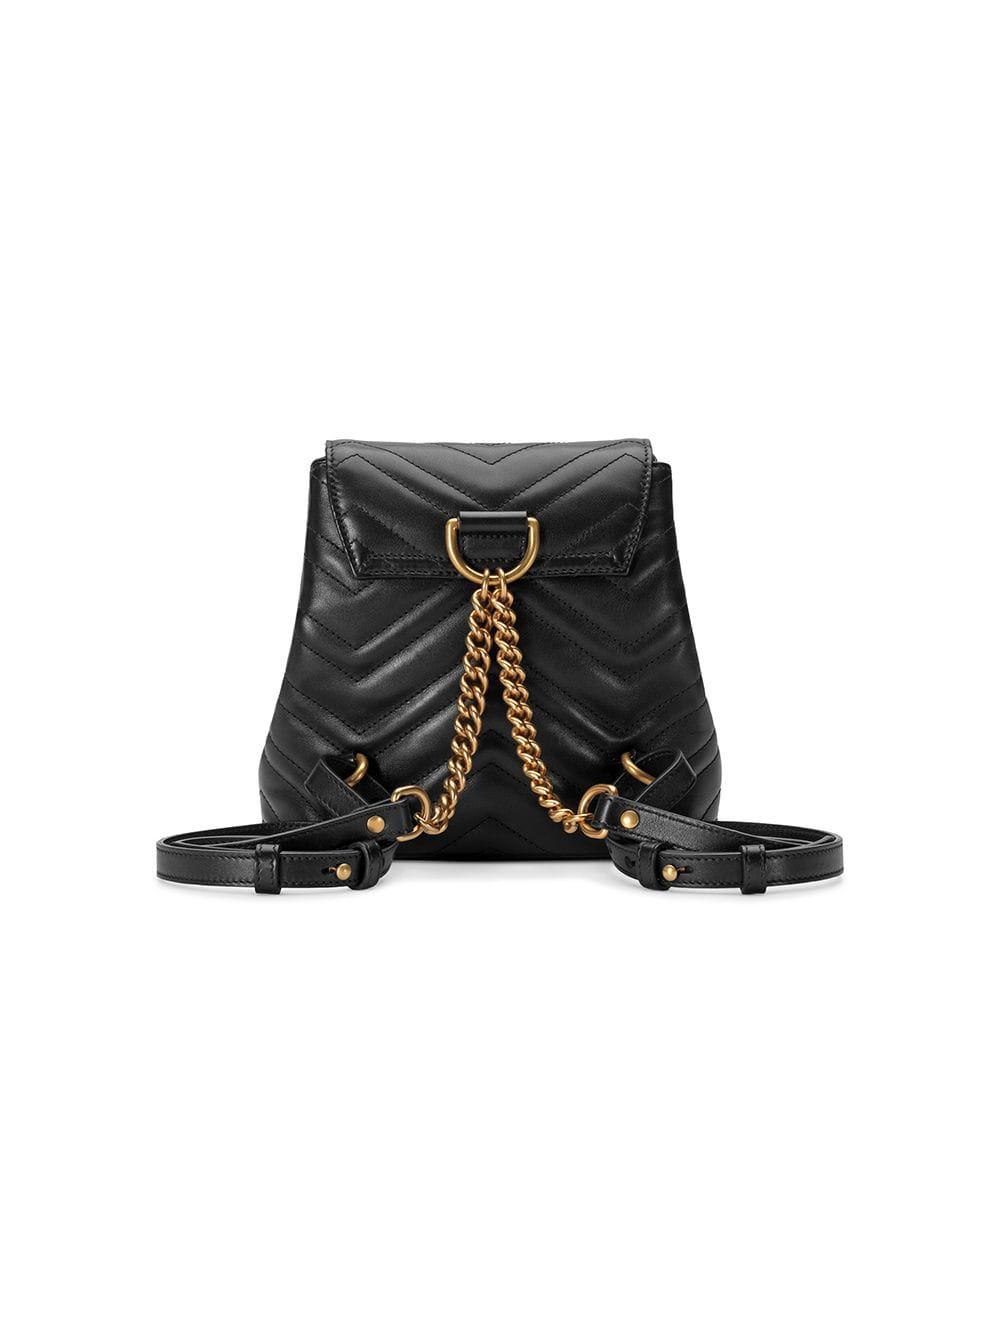 448dd7ceb495 Gucci - Black Gg Marmont Matelassé Backpack - Lyst. View fullscreen